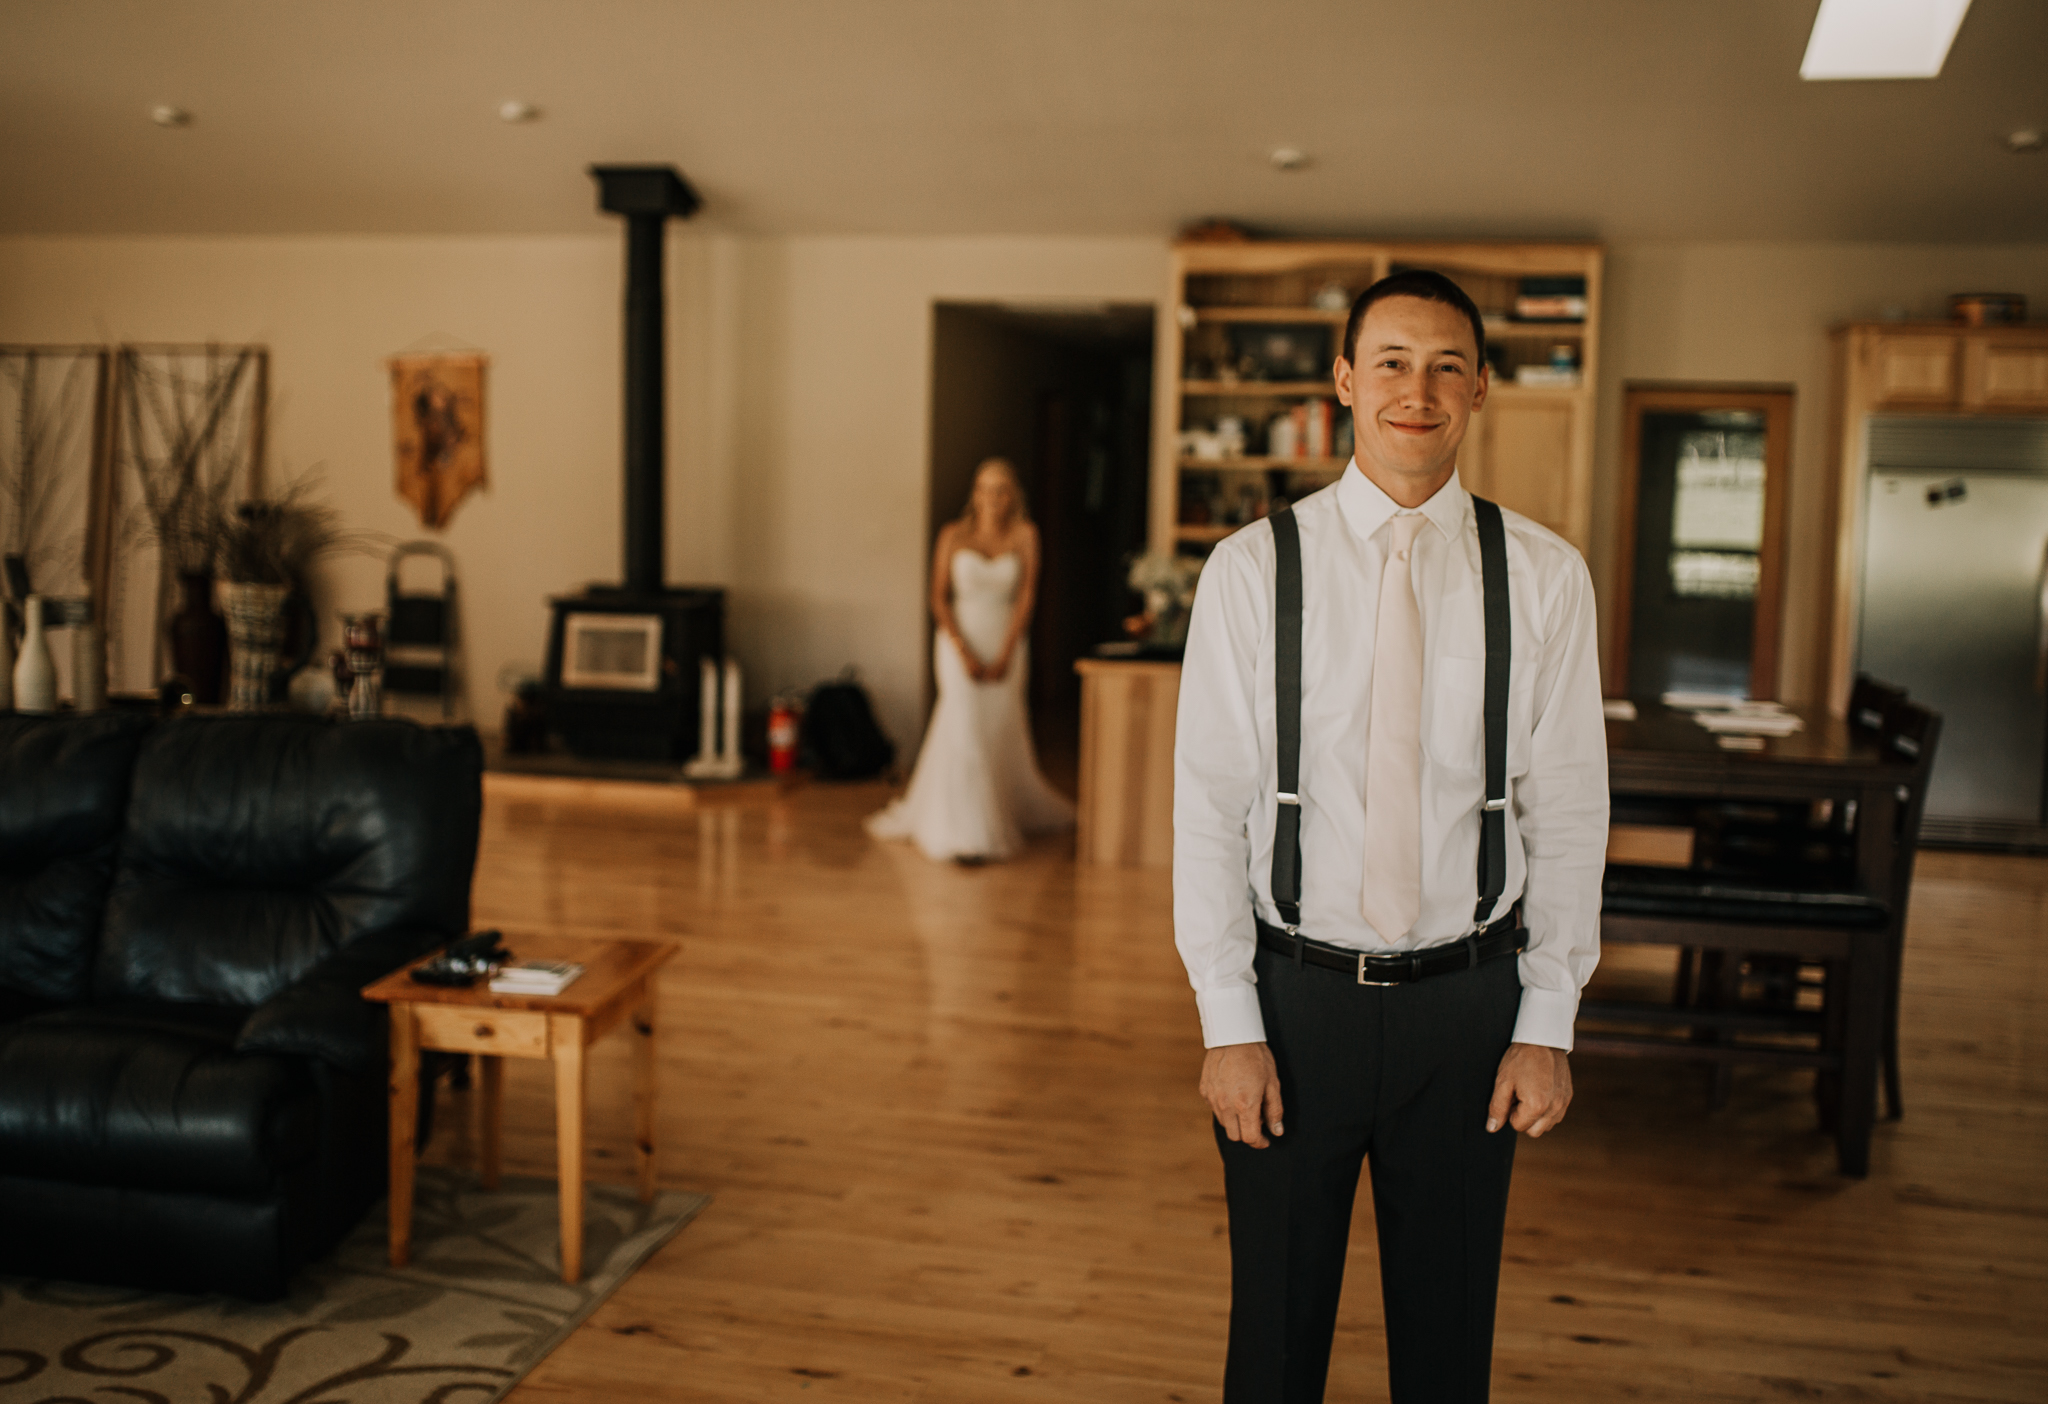 Bride and Groom first look on their wedding day in Harrison, Idaho